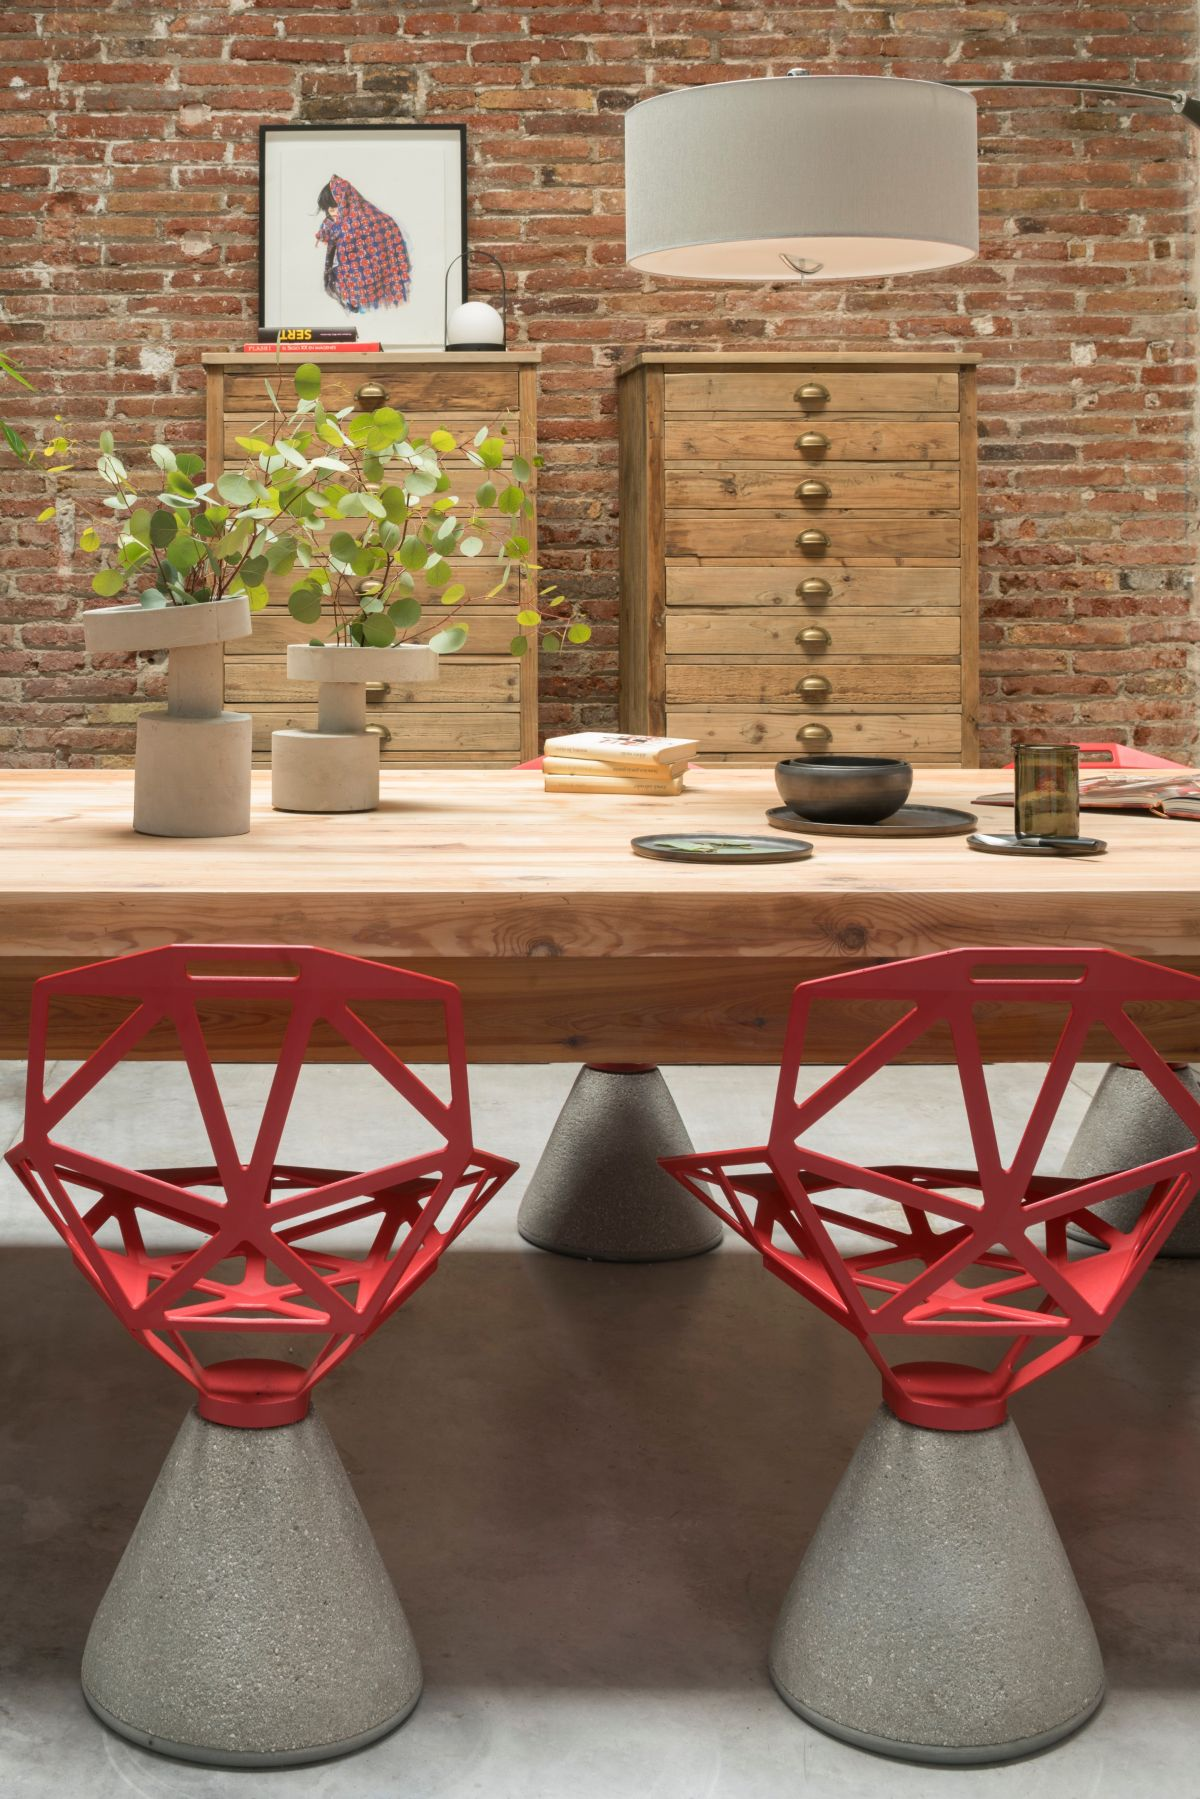 The furniture and the accessories feature contrasting styles but ultimately complement each other perfectly